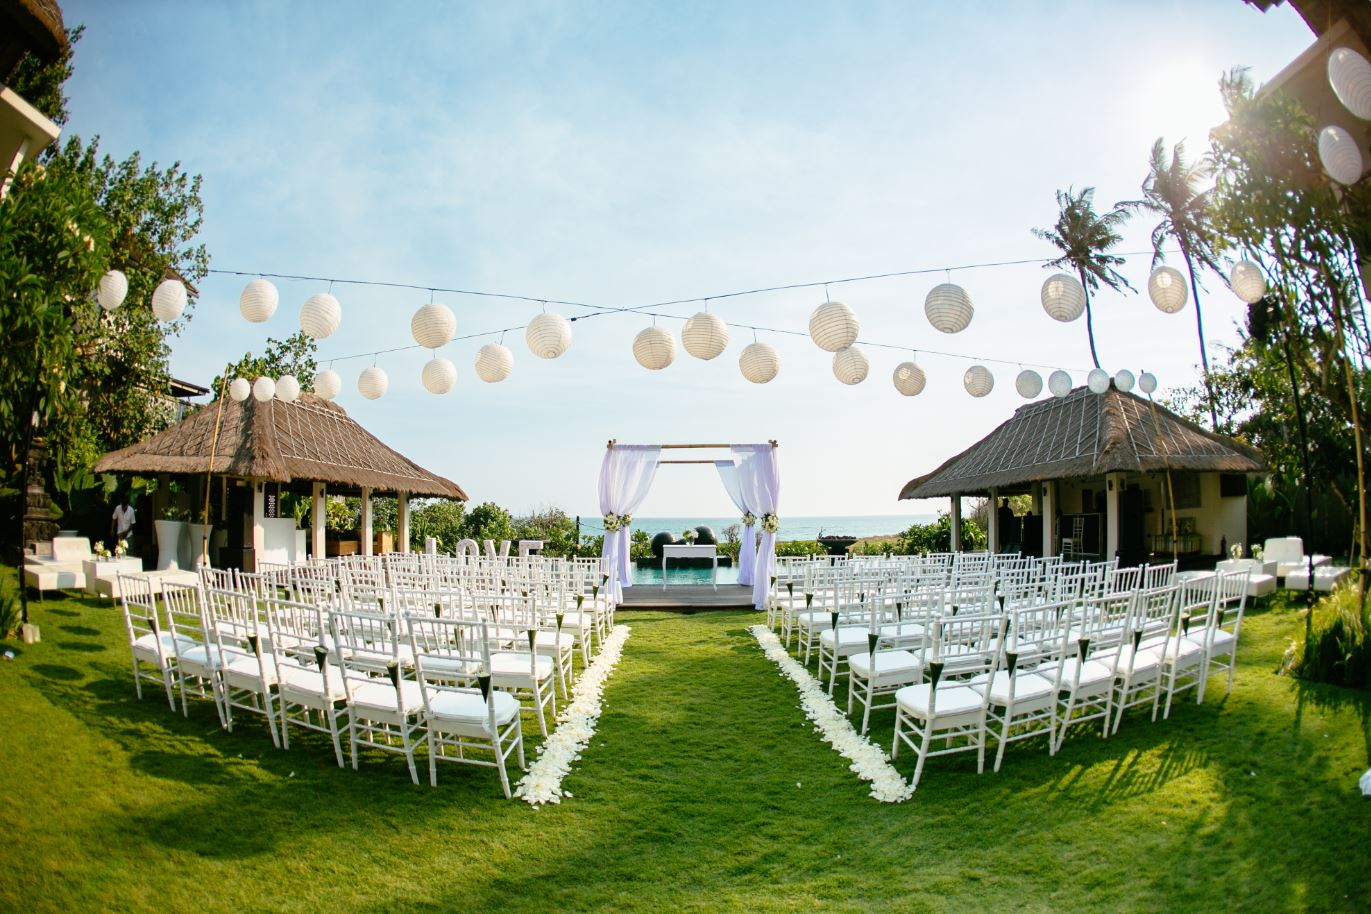 Seseh beach villa 1 canggu bali weddings bali wedding for East coast beach wedding locations